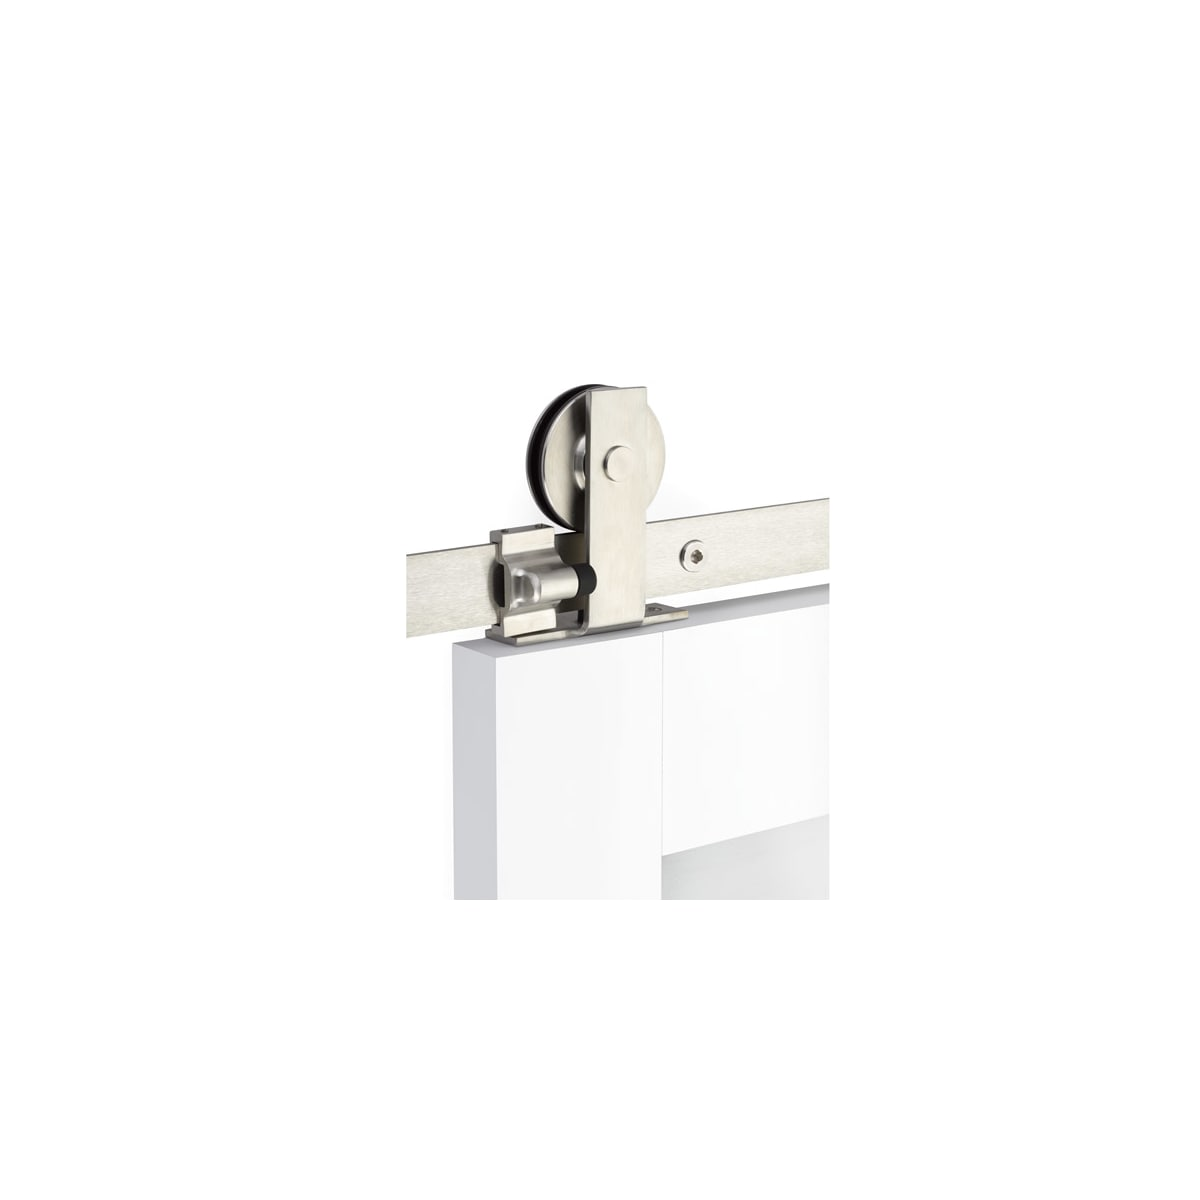 Emtek Modern Rectangular 60 Inch Top Mount Barn Door Hardware Set - Includes Track, Hangers, and Matching Hardware